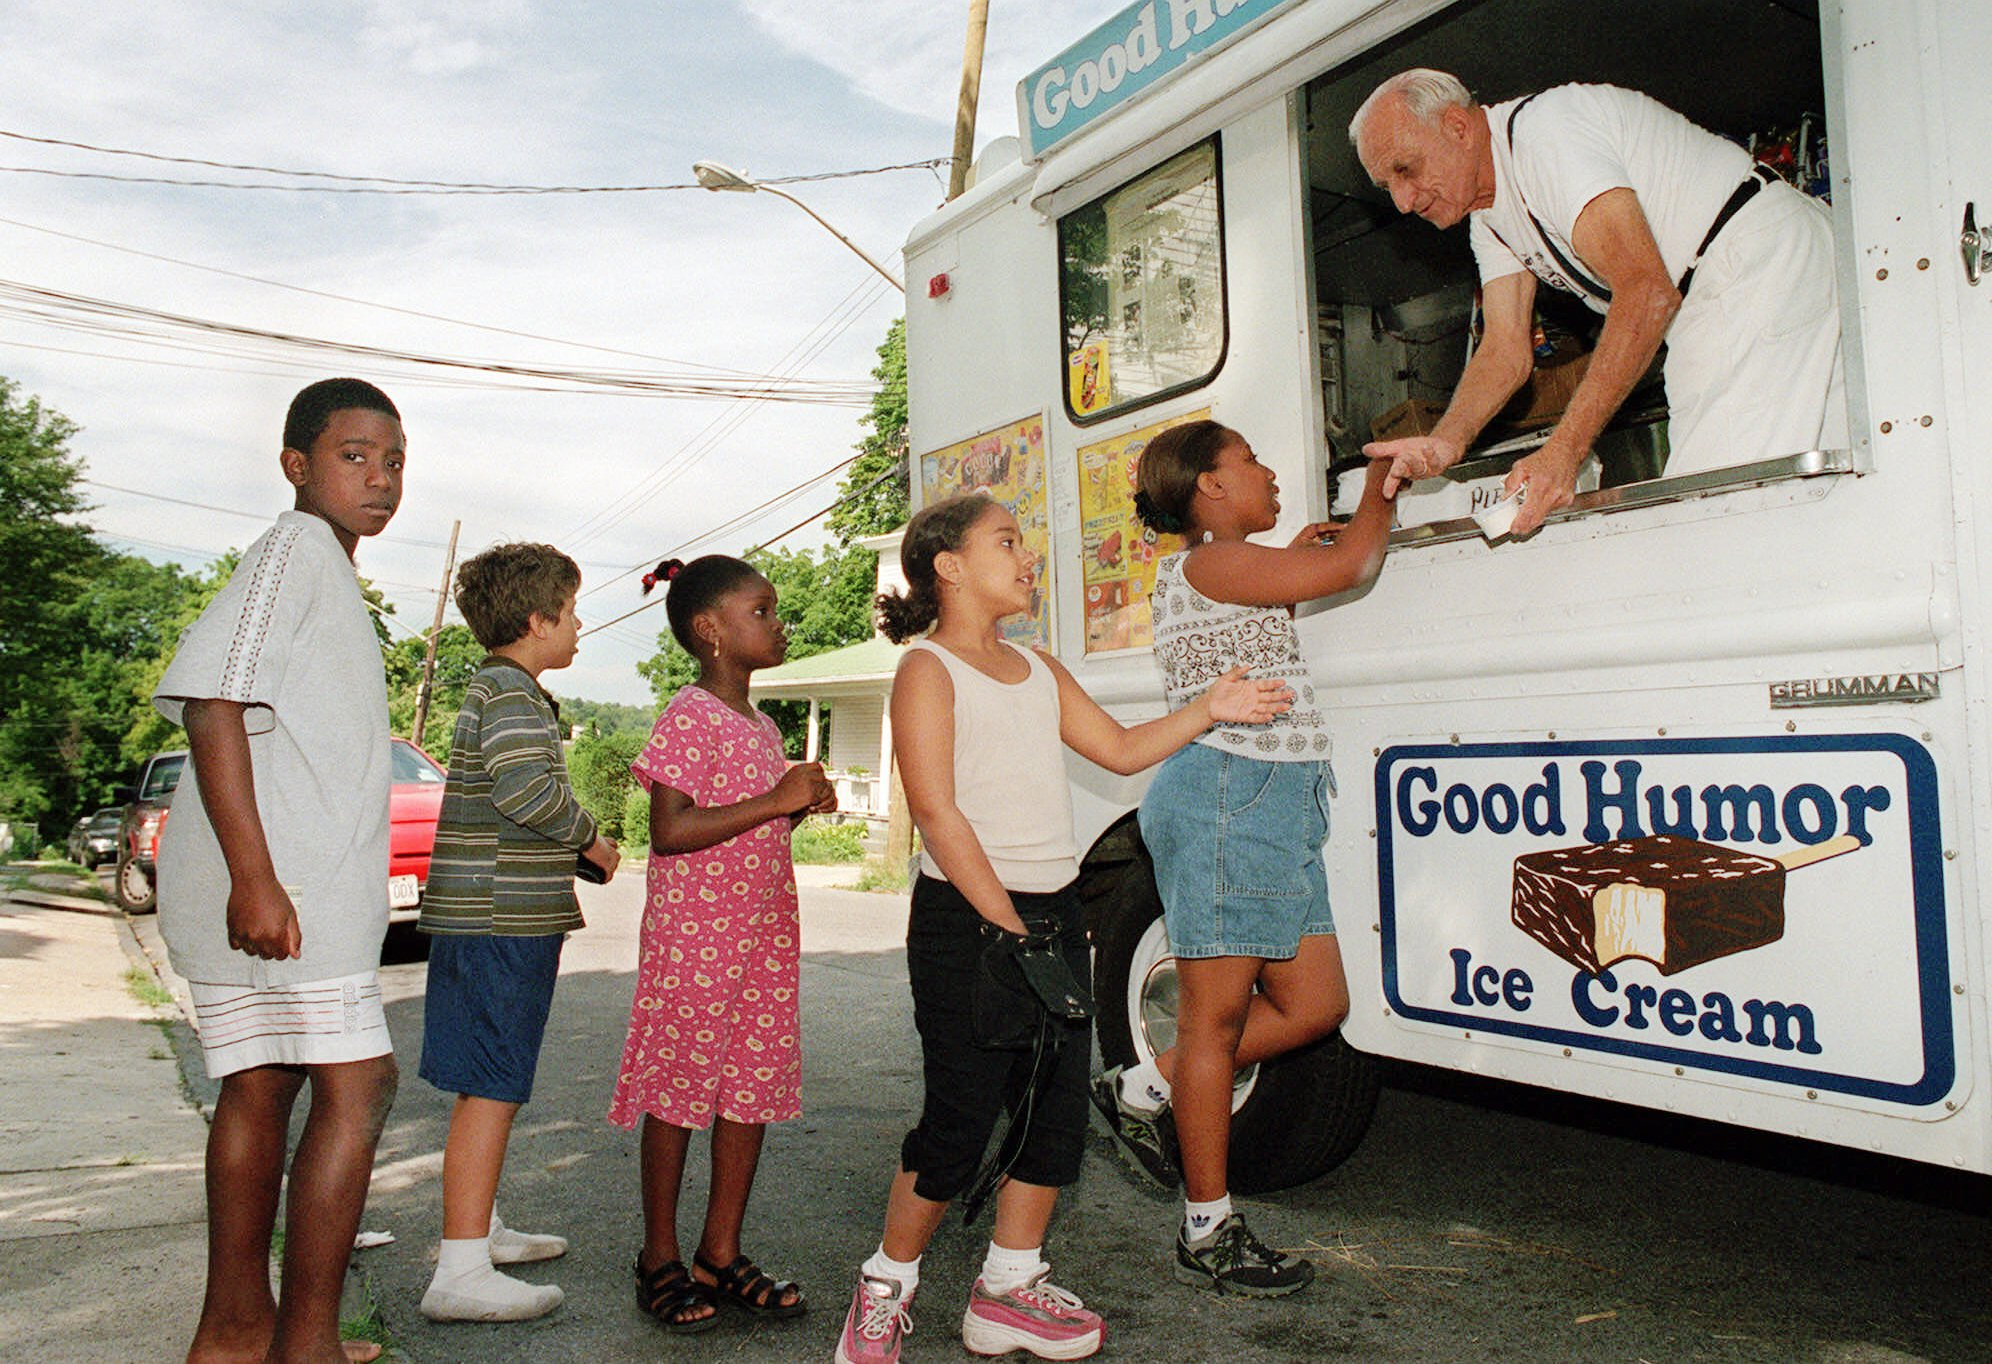 Click here to read The Great Good Humor Ice Cream Shortage of 2012